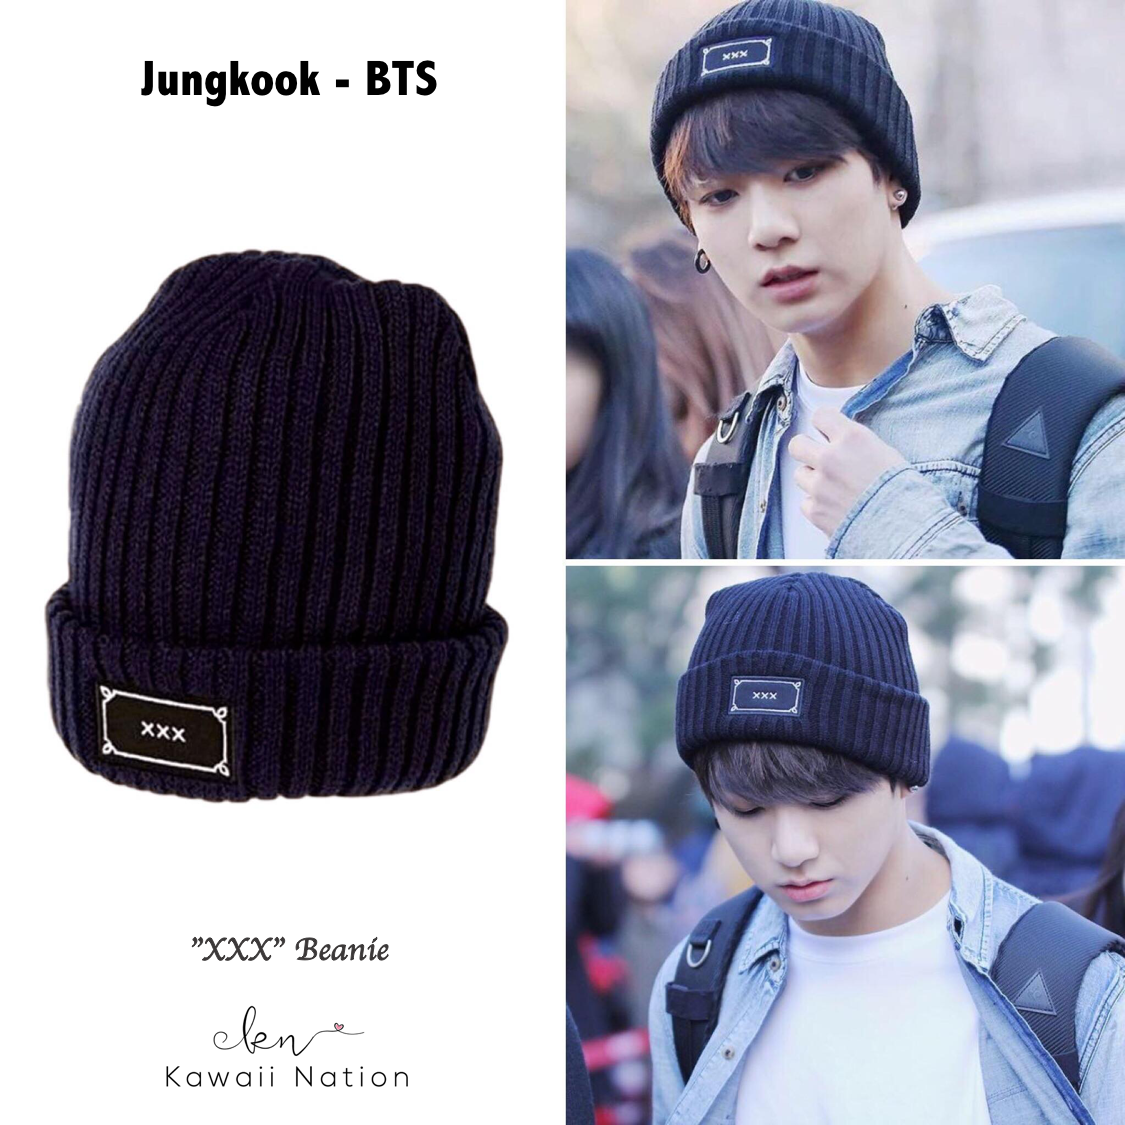 Knitted Beanie Inspired By Jungkook From Bts And N From Vixx Material Acrylic Bts Clothing Bts Inspired Outfits Beanie